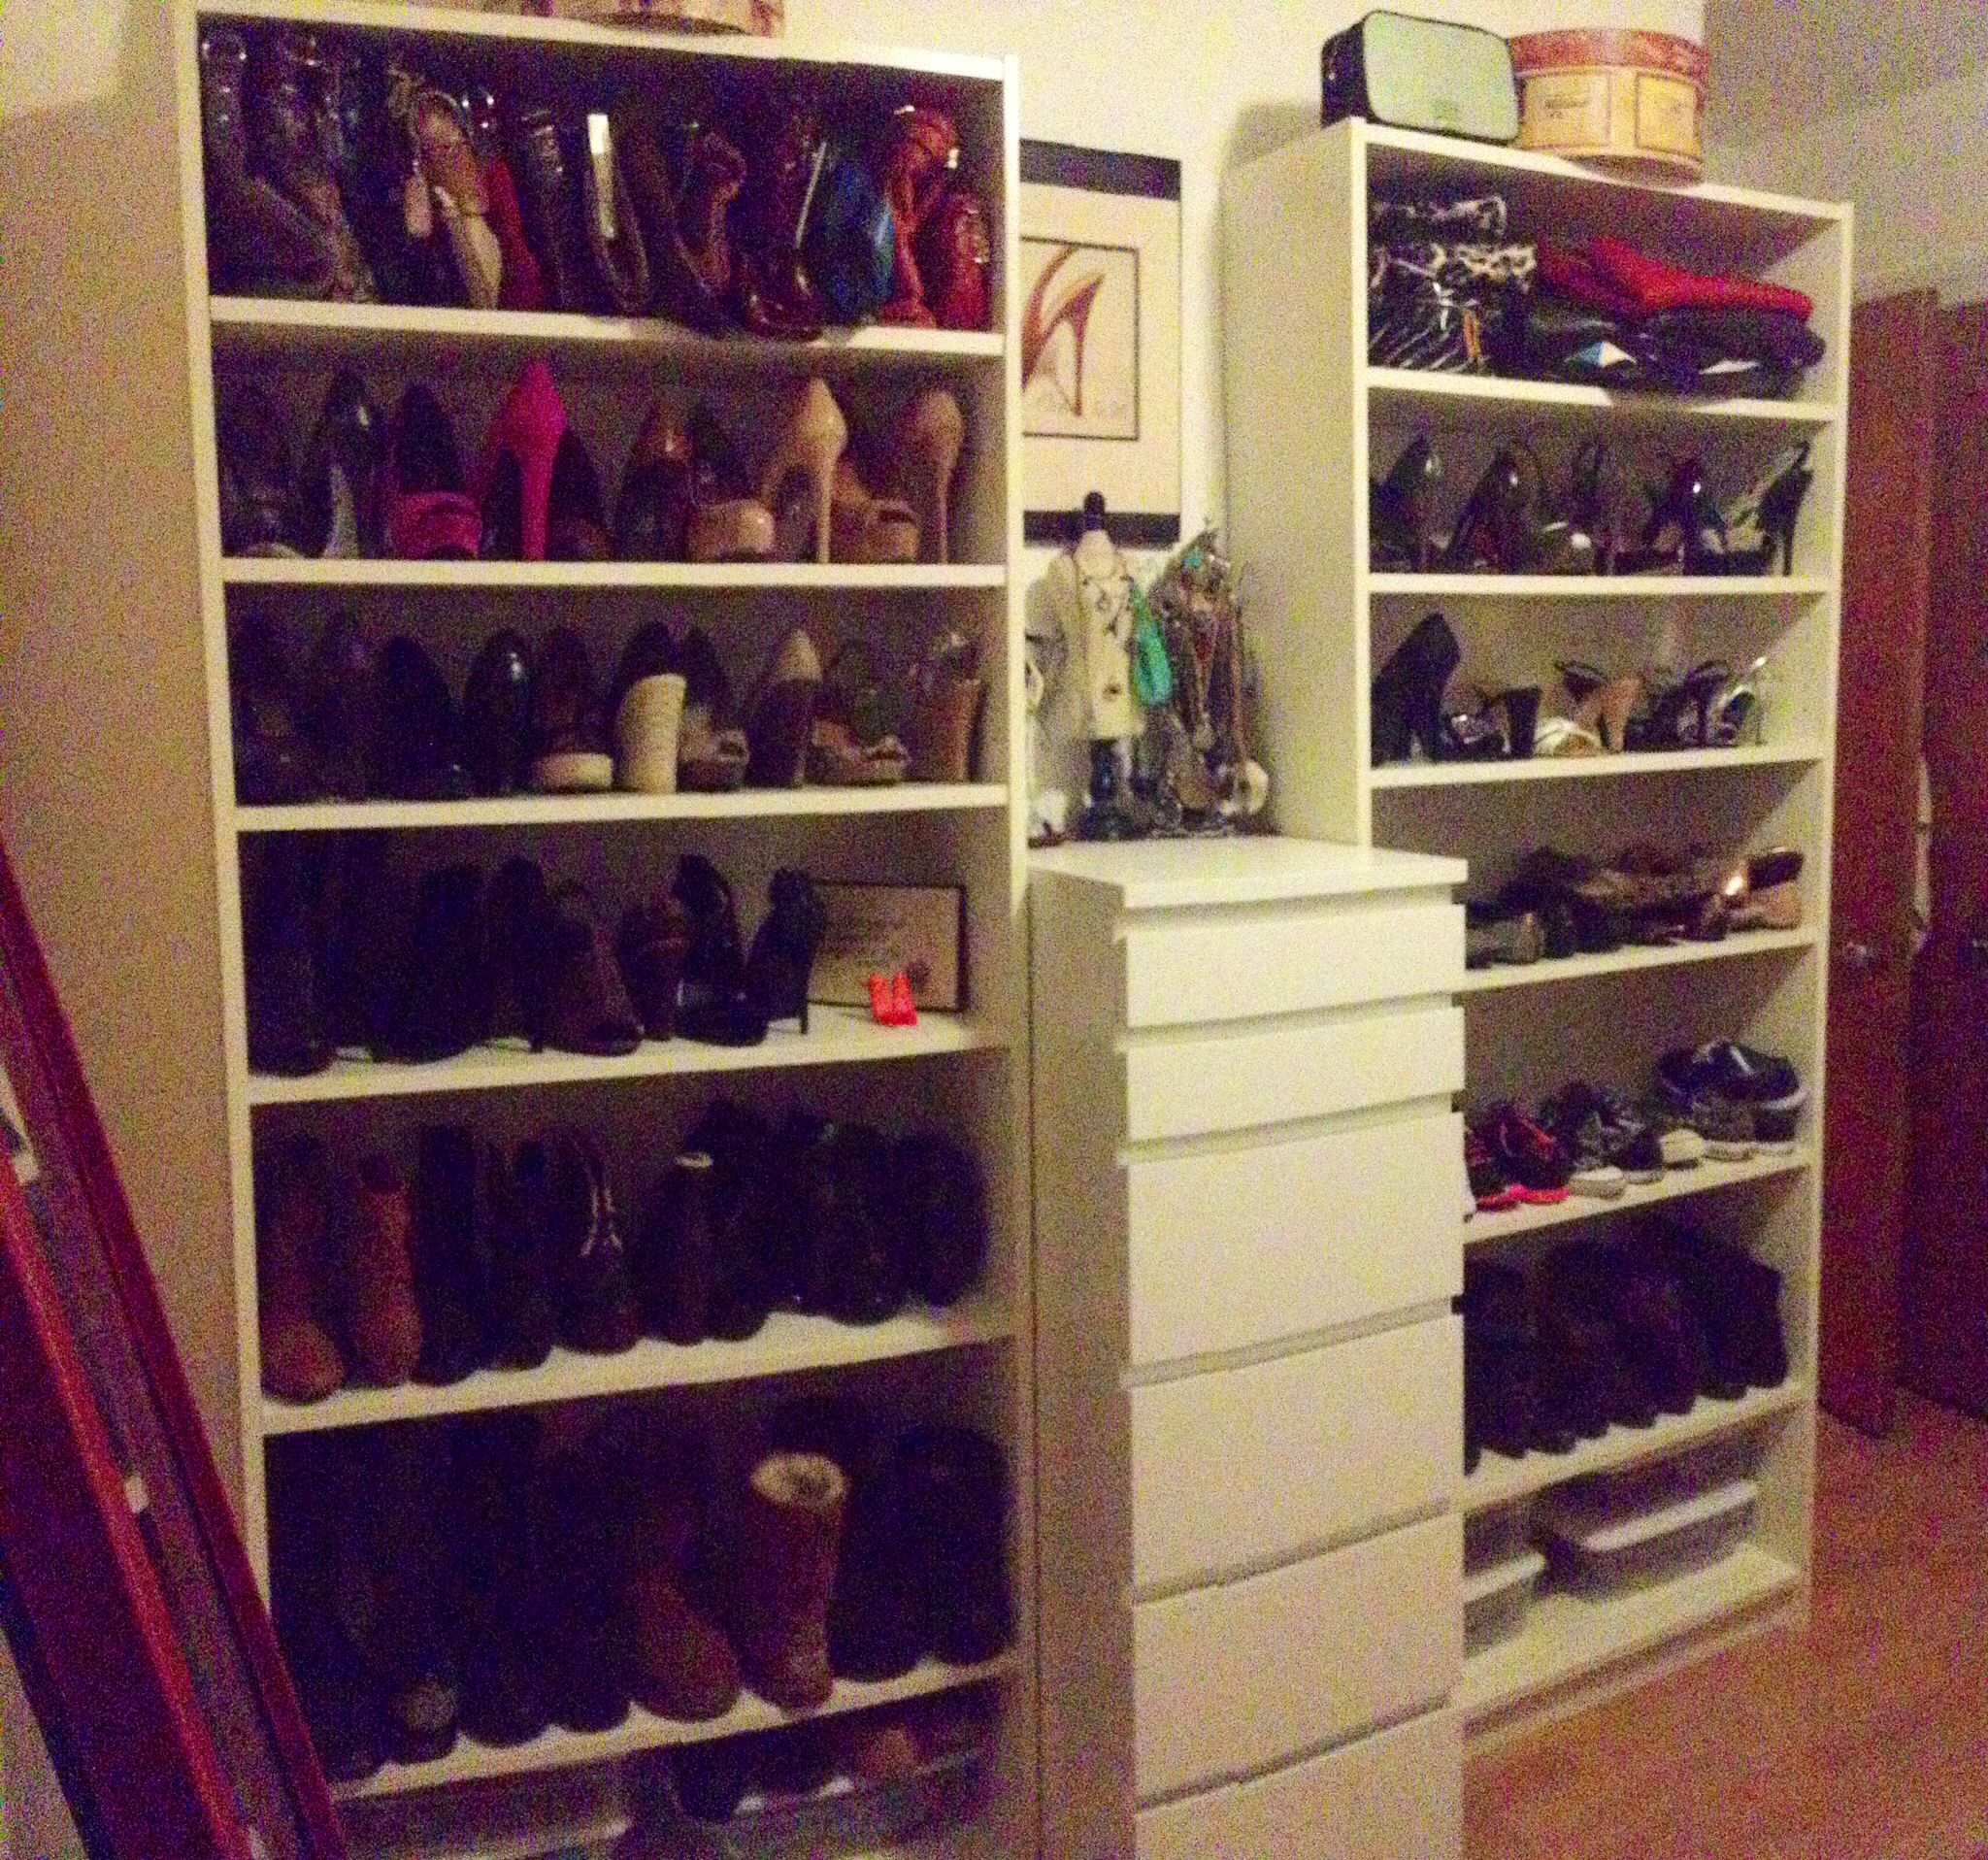 ugg shoes other side of my walk in room closet billy bookcases all white from